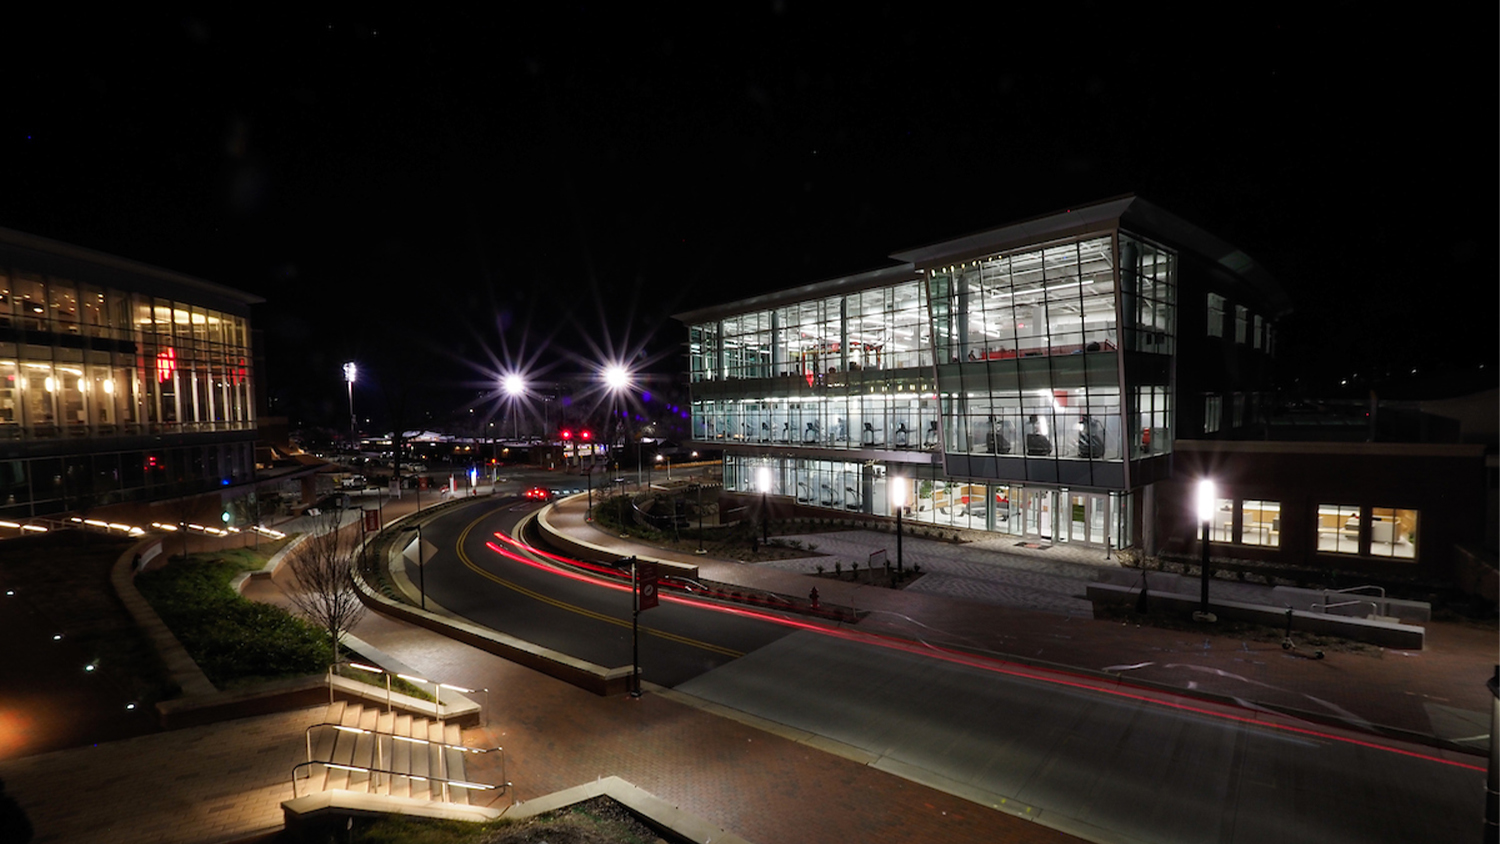 The new Wellness and Recreation Center at night